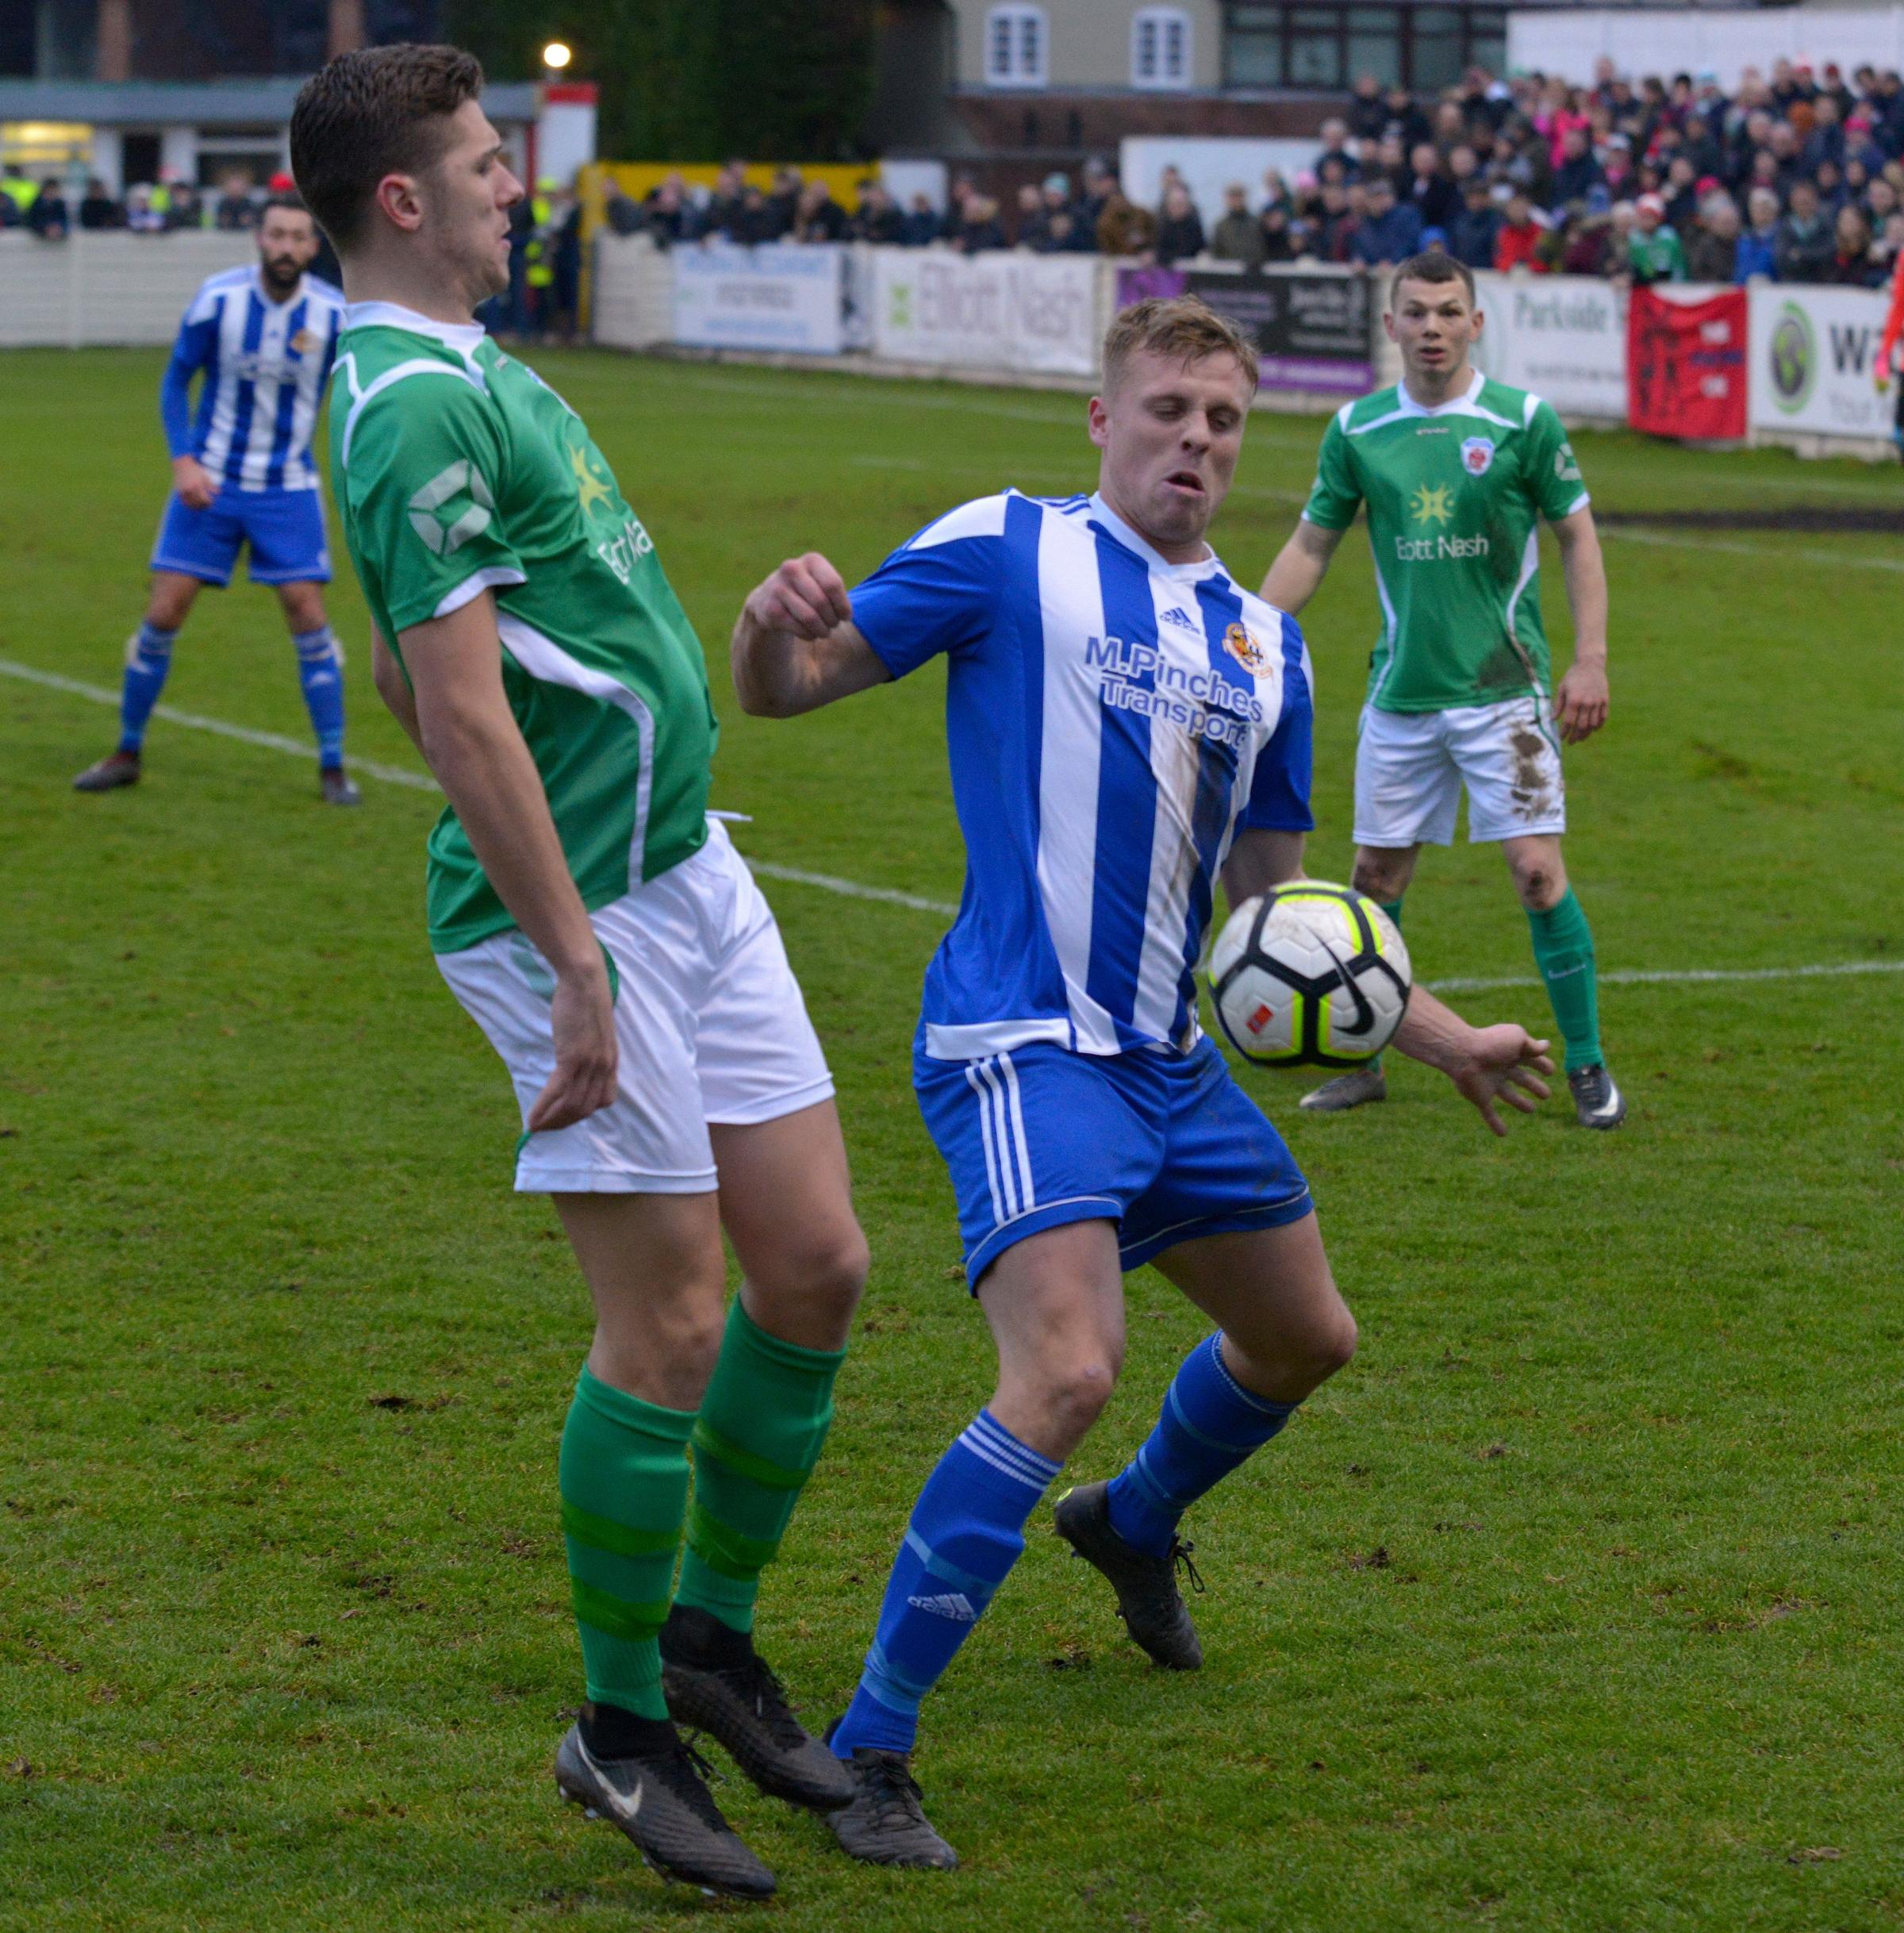 INJURED: Worcester City's Nathan Hayward